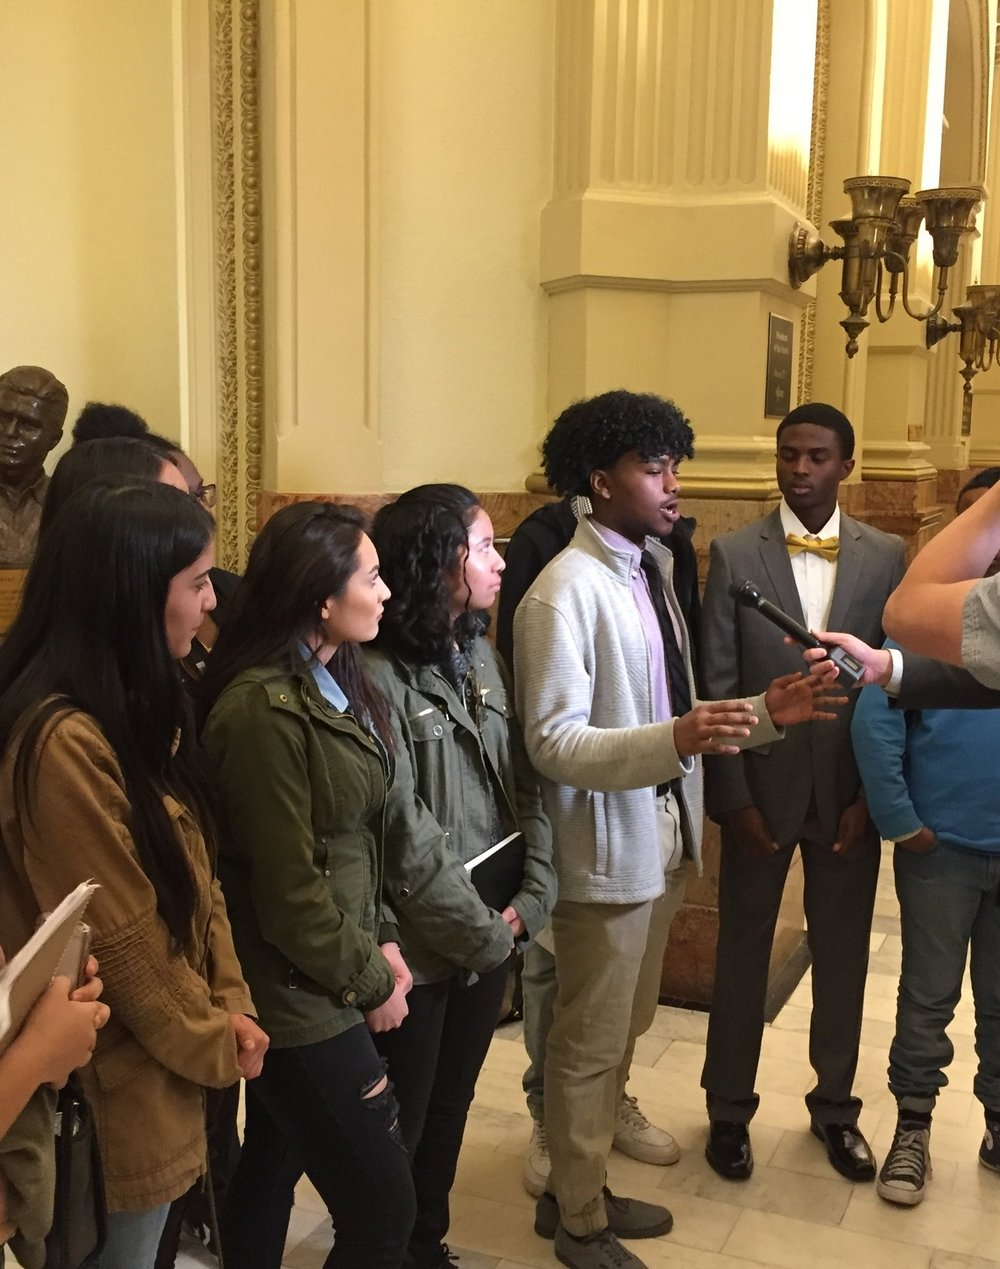 About SV2 - Student Voice, Student Vote (SV2) is a growing coalition of organizations and individuals seeking to change Colorado state law to allow 16- and 17-year olds the right to vote in school board elections.Learn More